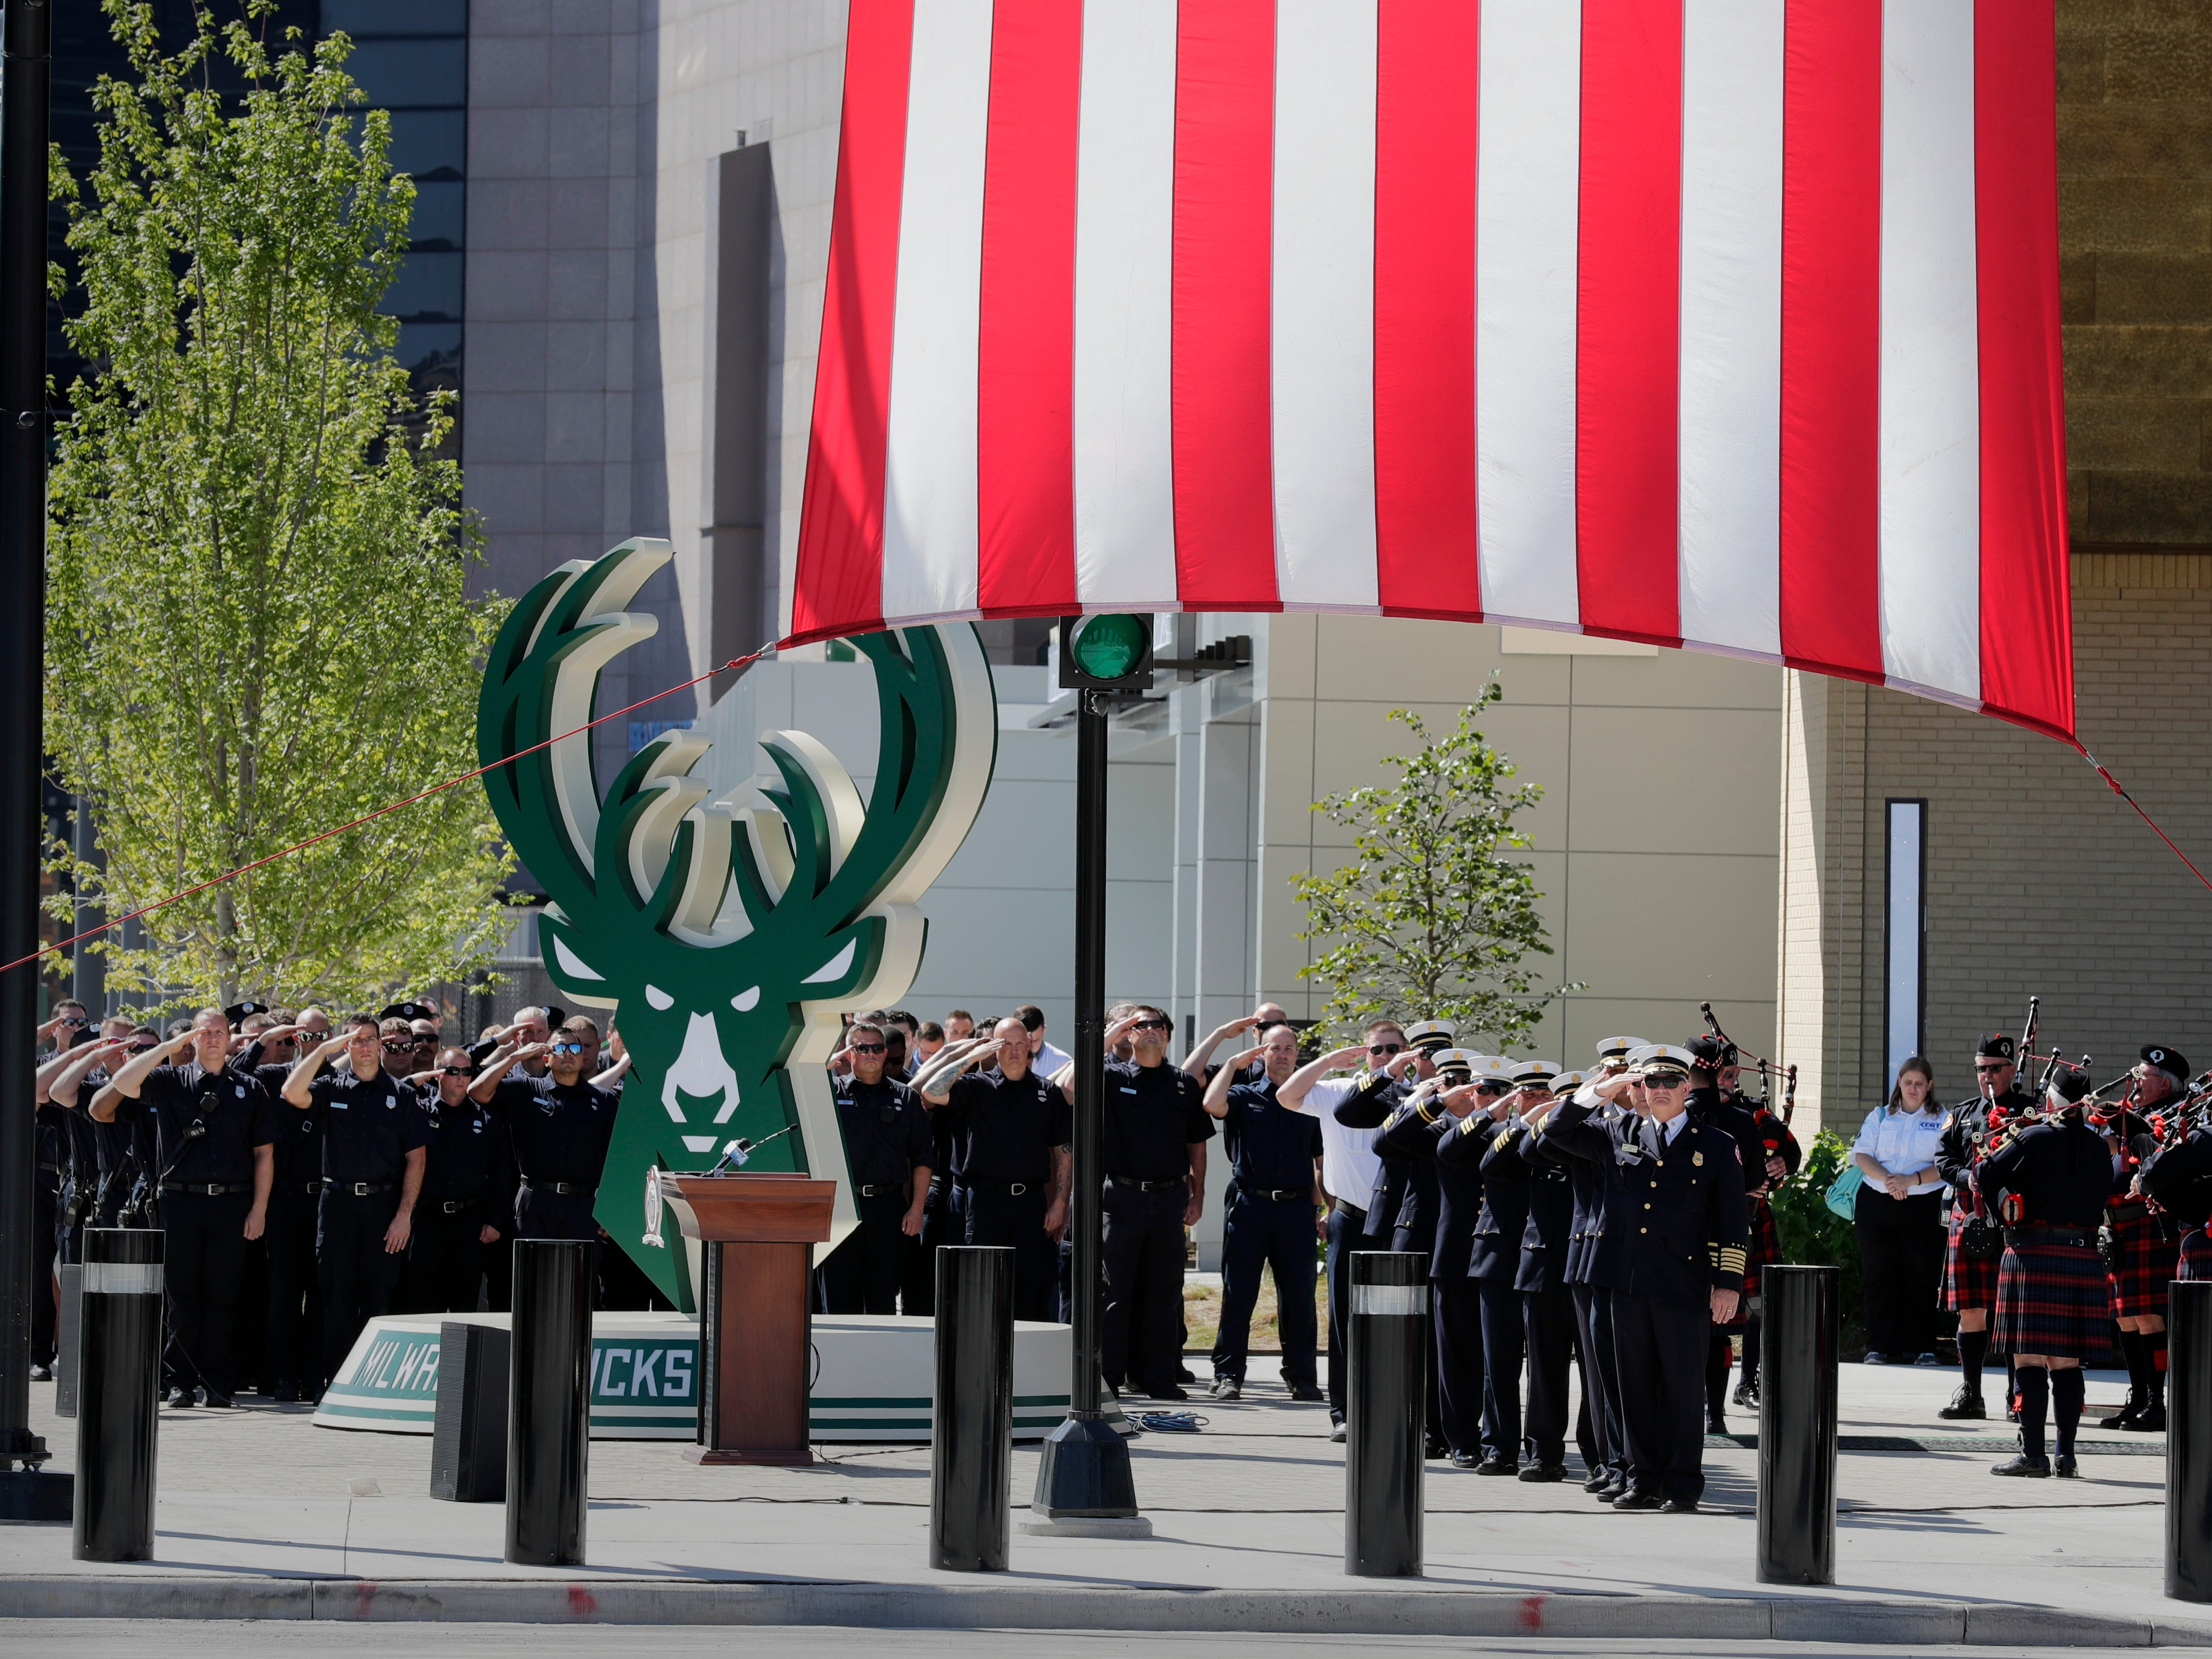 A ceremony marking the 17th anniversary of the the Sept. 11, 2001, terror attacks was held at the Fiserv Forum Tuesday.